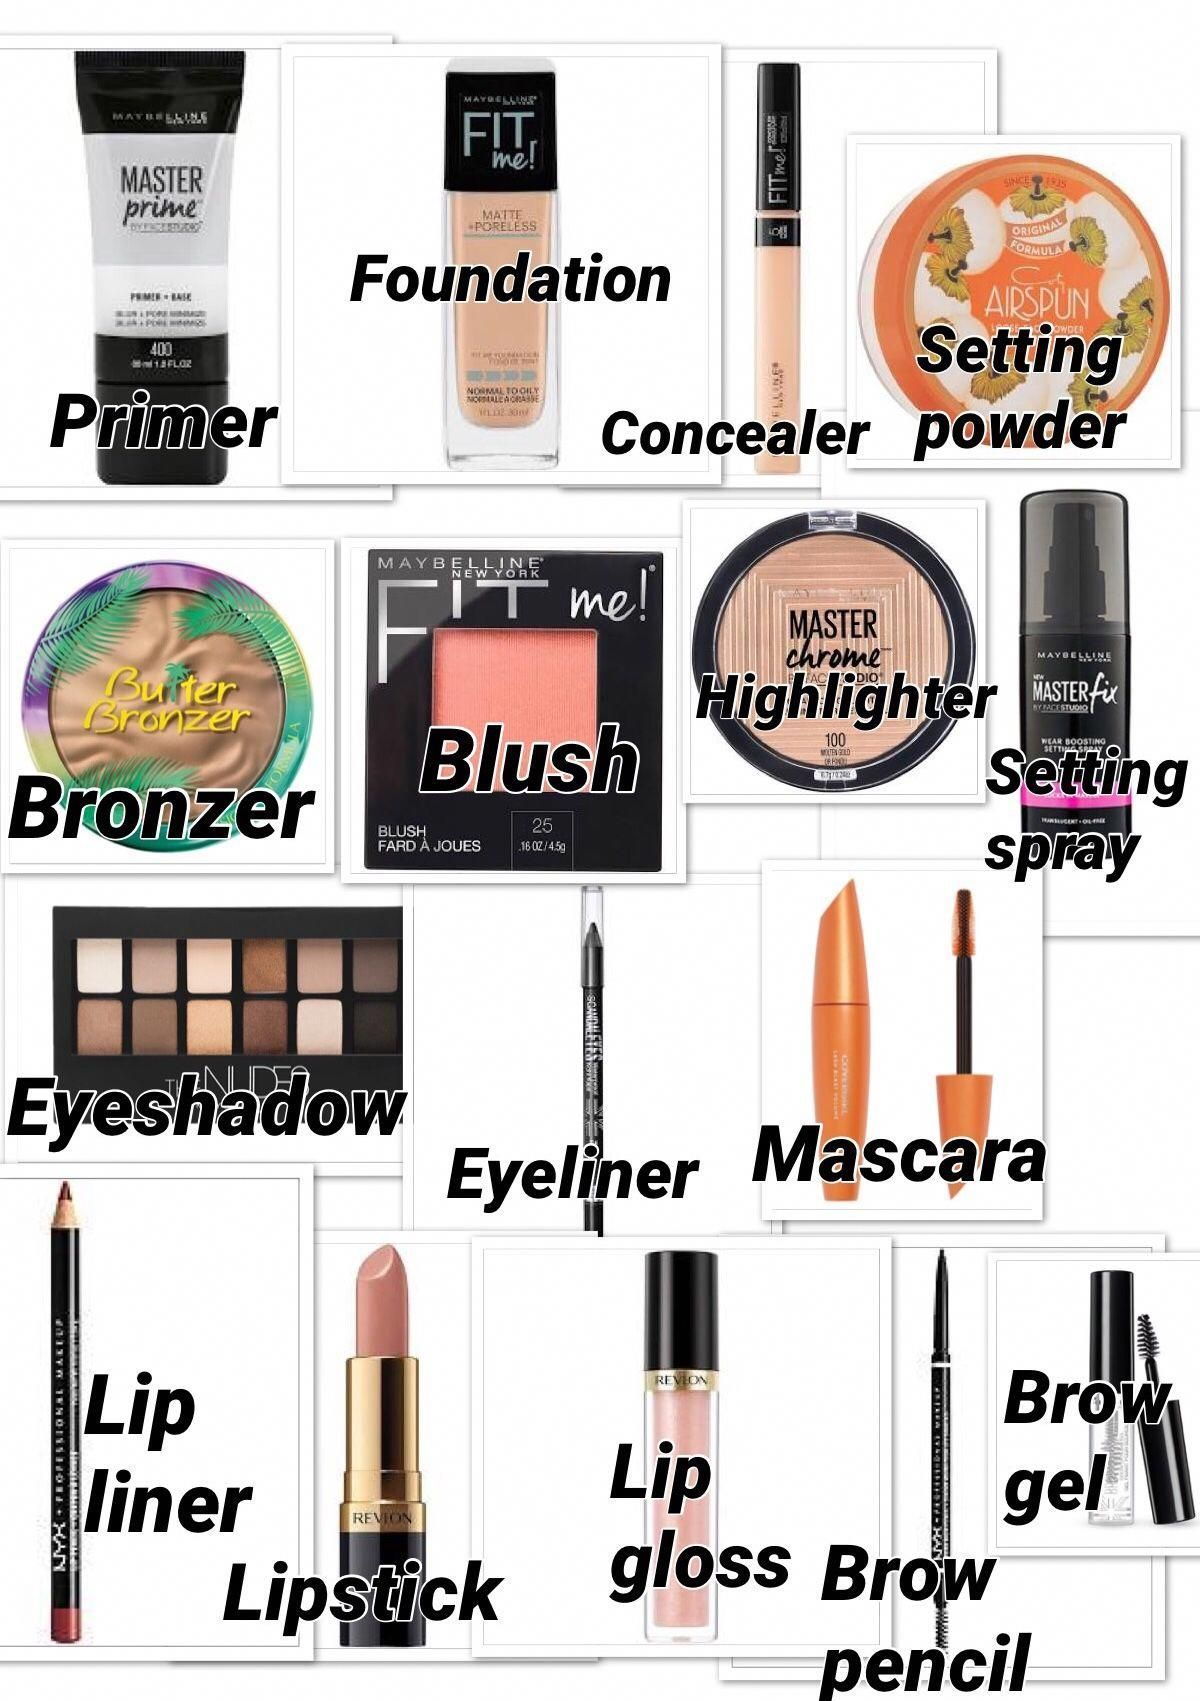 Drugstore makeup beginner kit makeuptoolsforbeginners